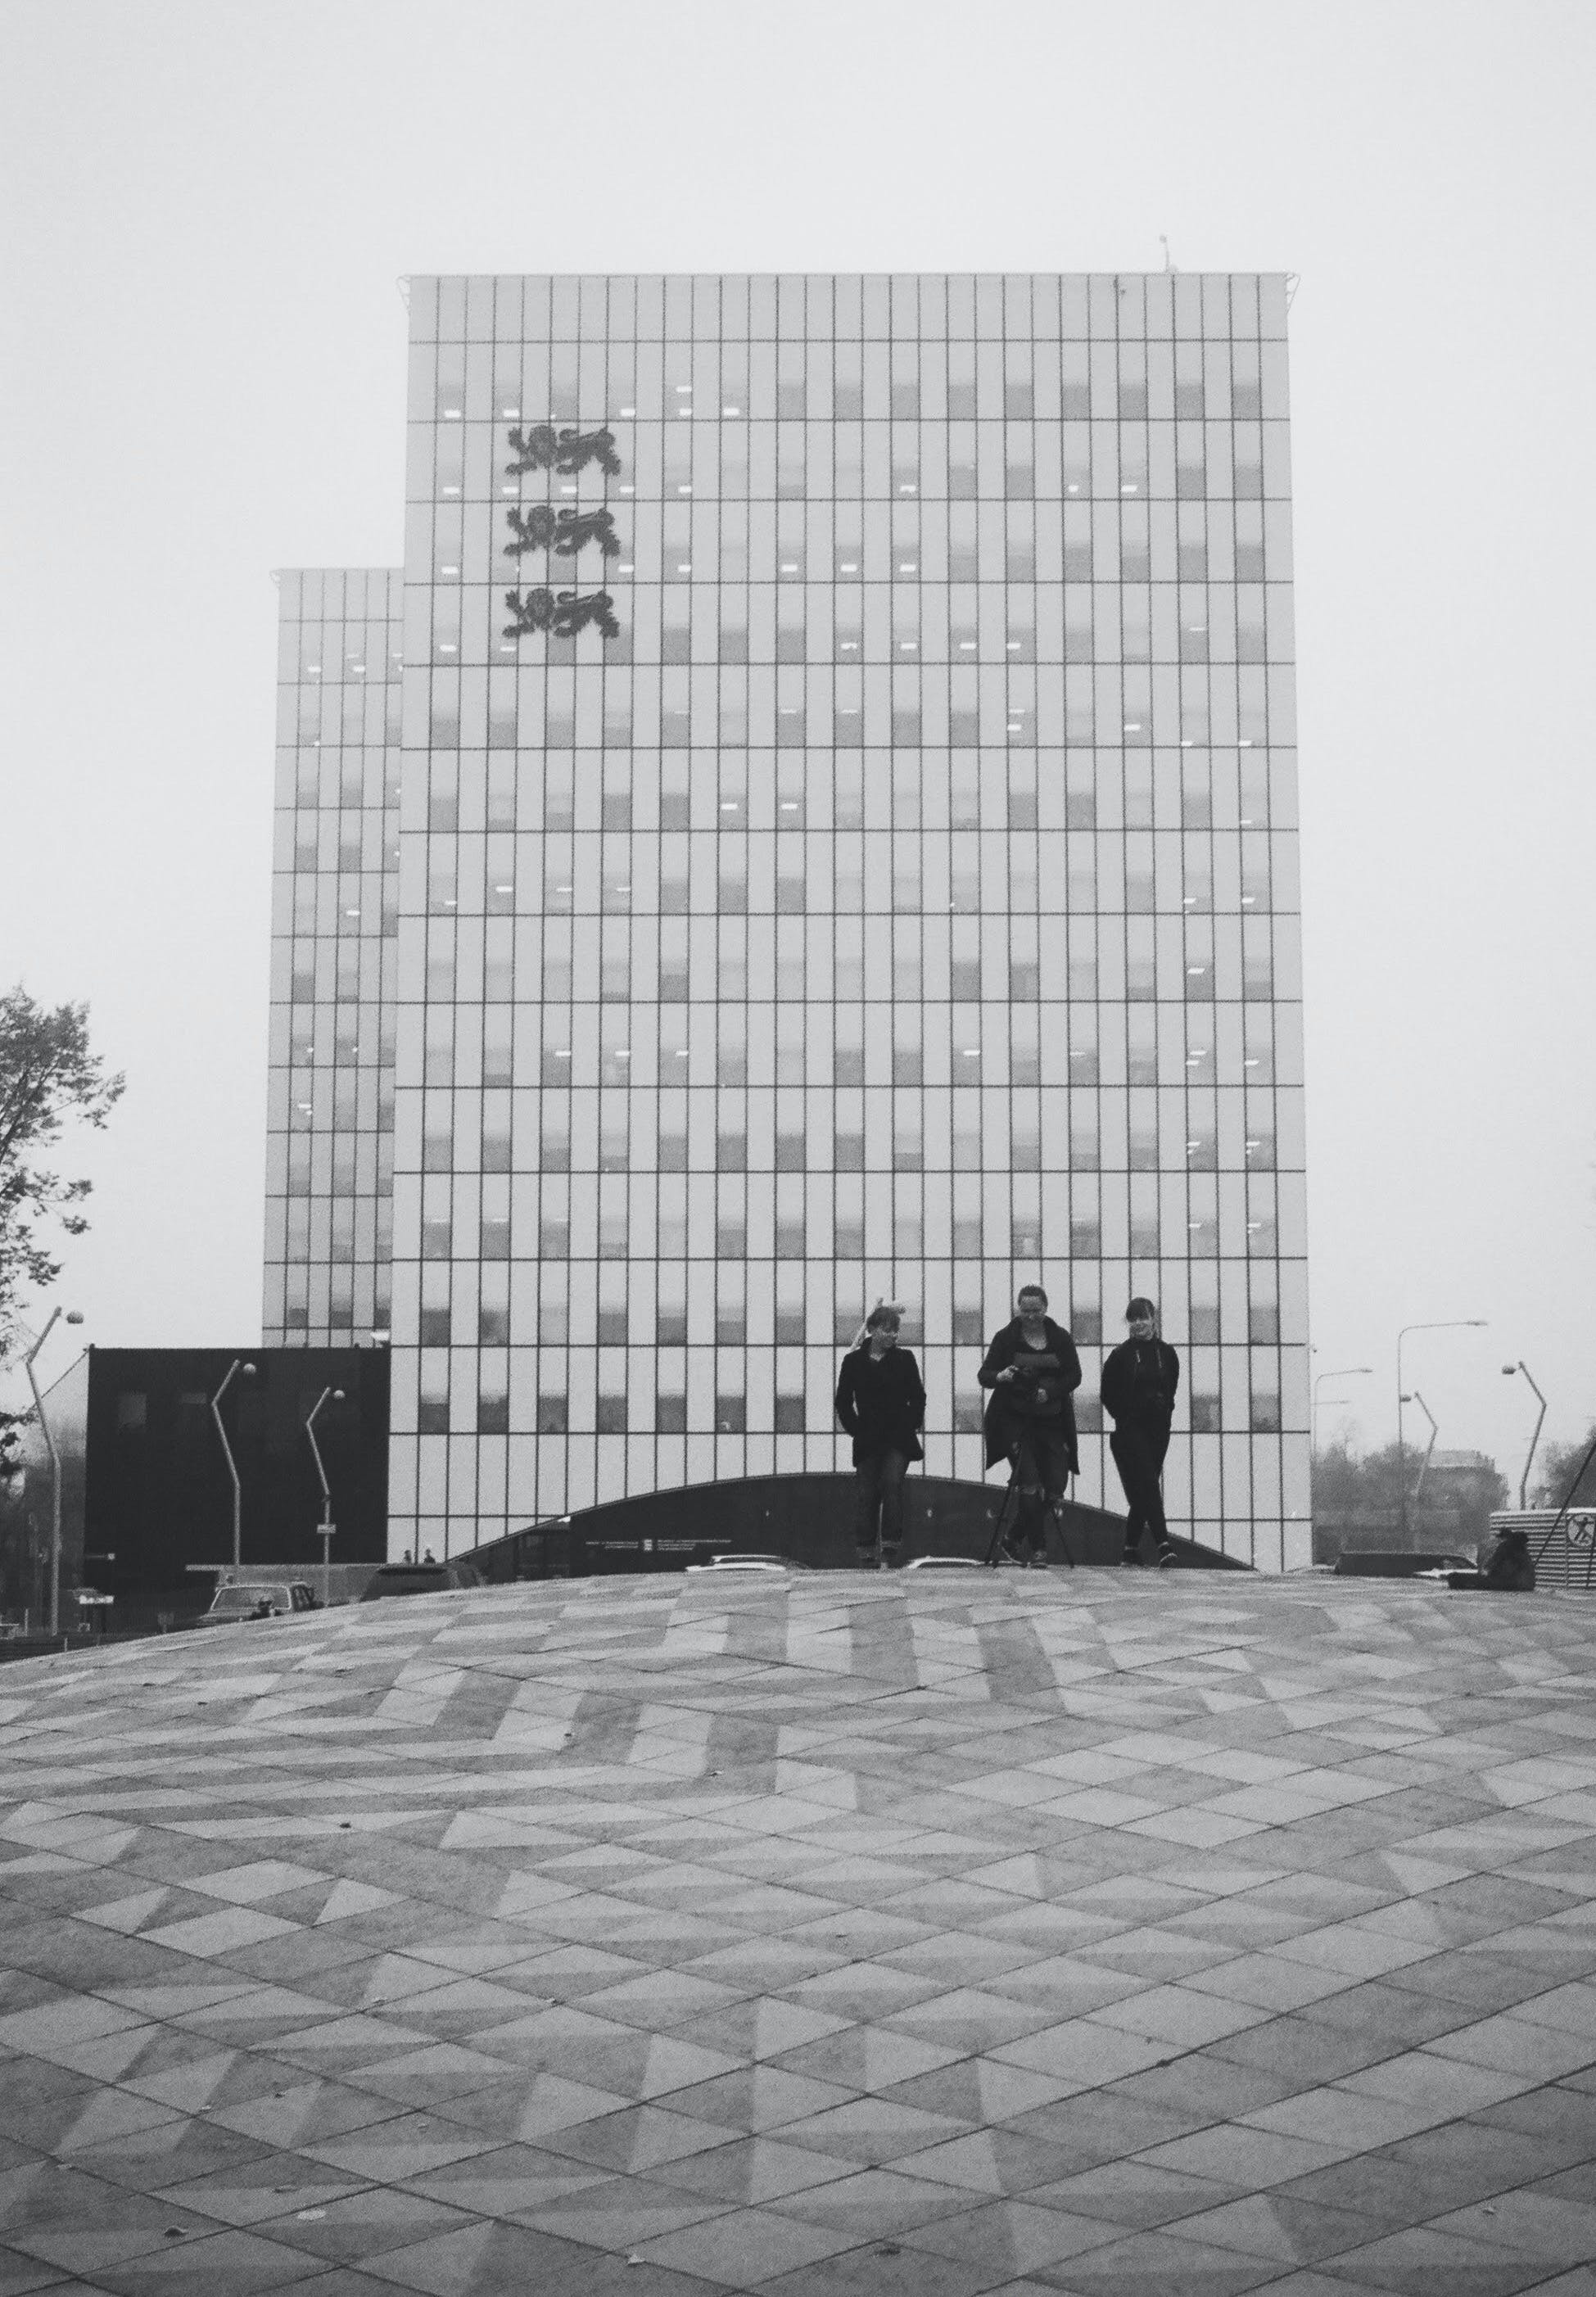 Grayscale Photo of Three People Near a Building